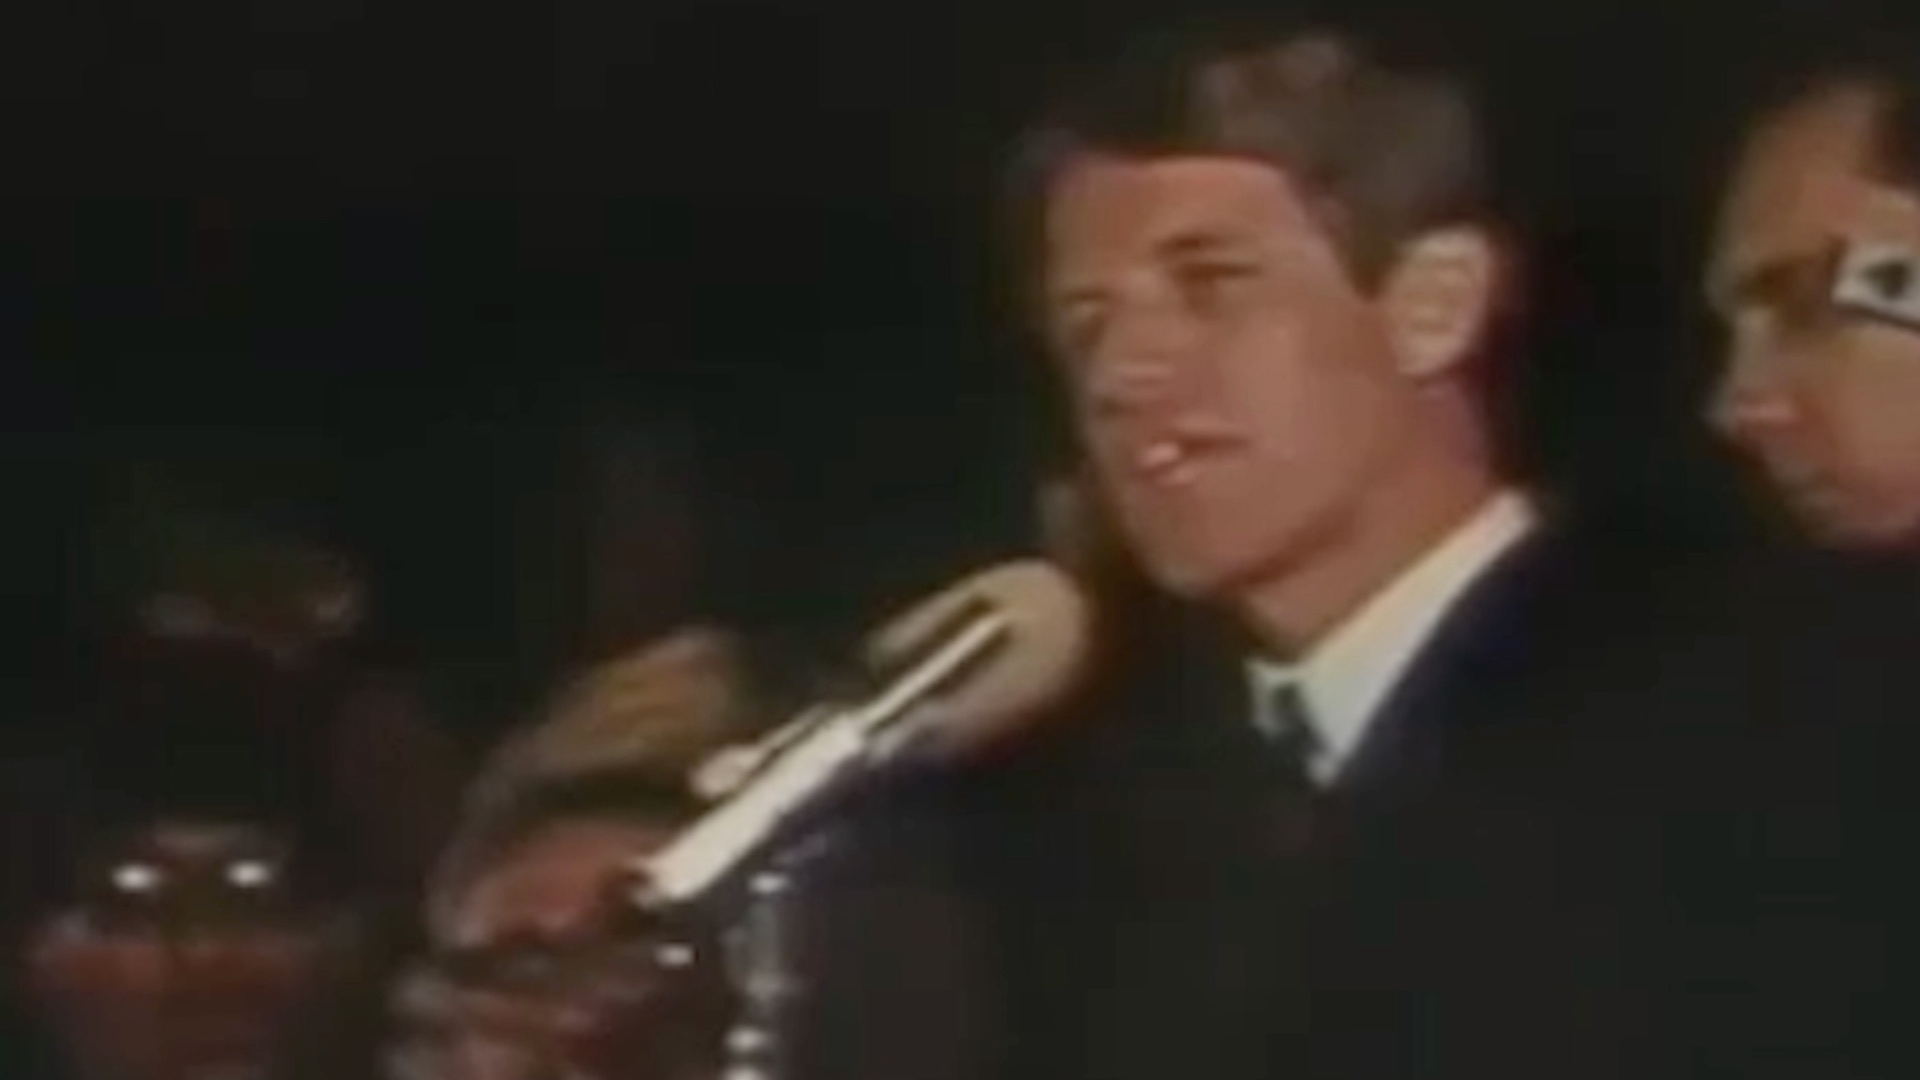 'That stain of bloodshed': After King's assassination, RFK calmed an angry crowd with an unforgettable speech